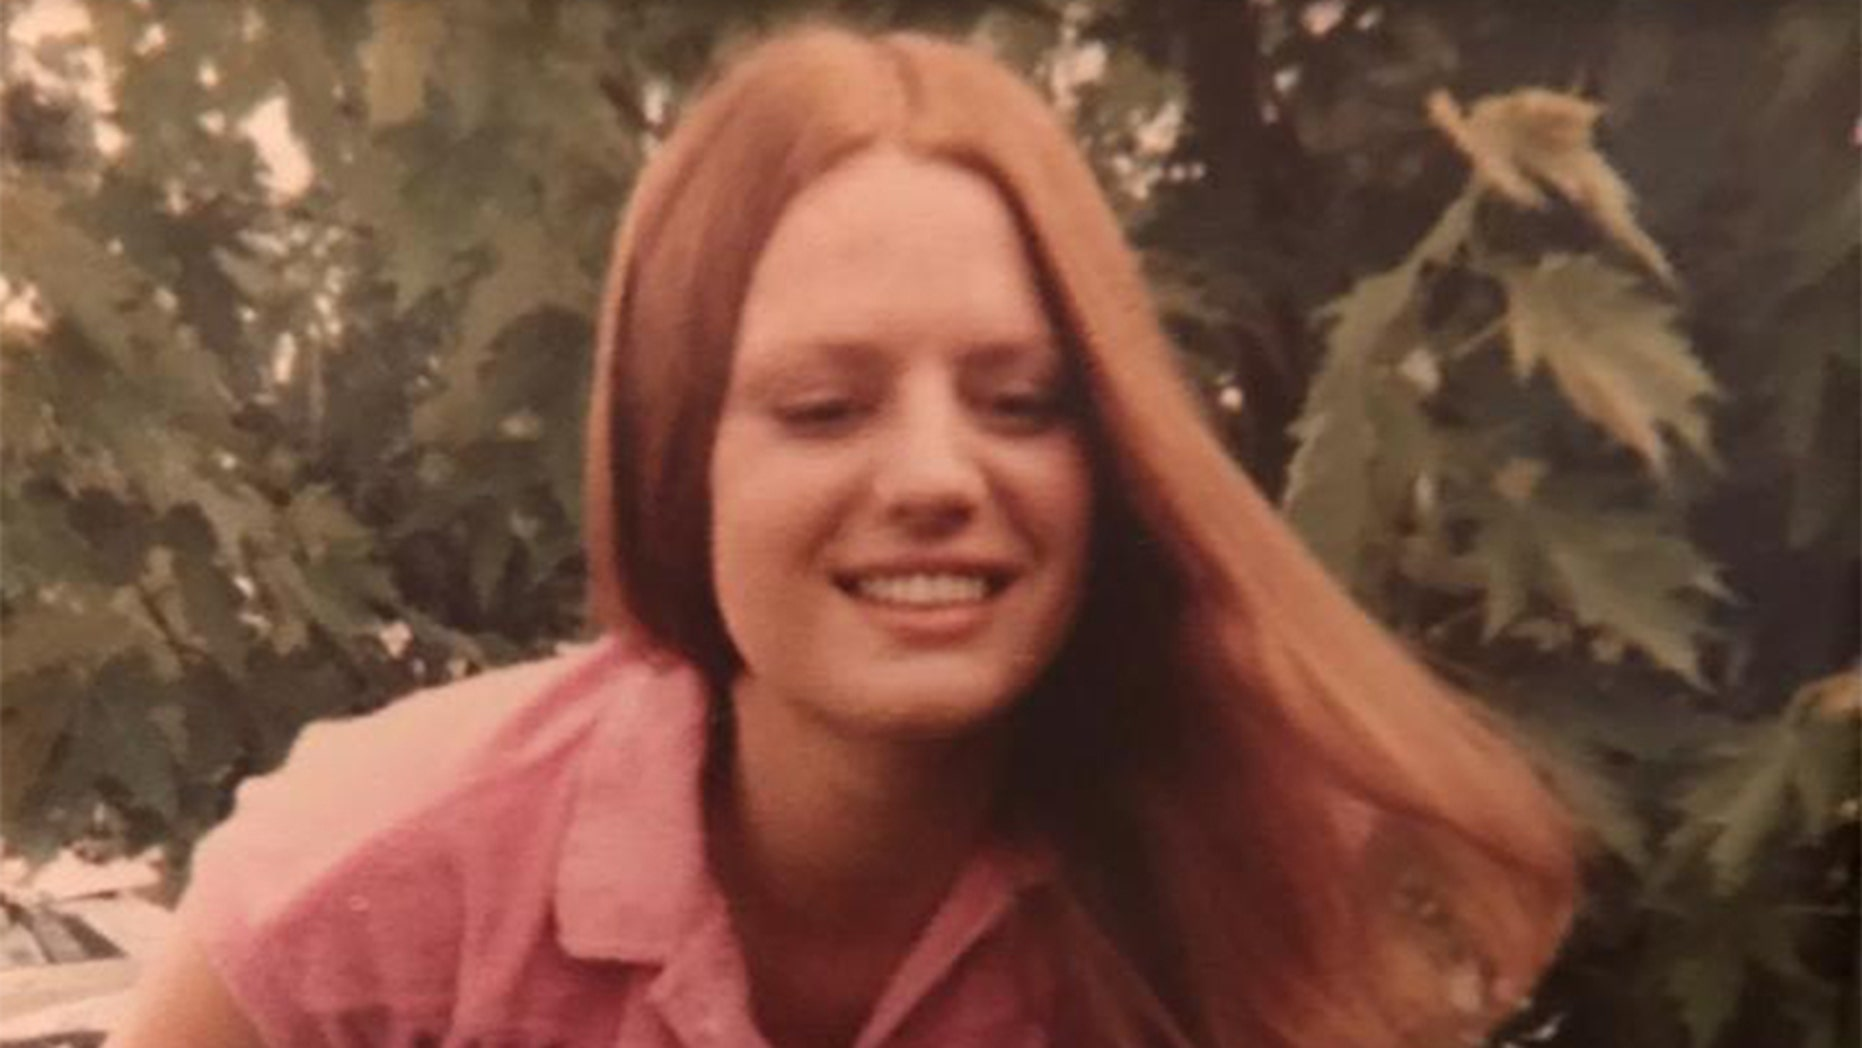 Police announced that Marcia L. King was the 21-year-old found dead outside of Dayton in 1981.